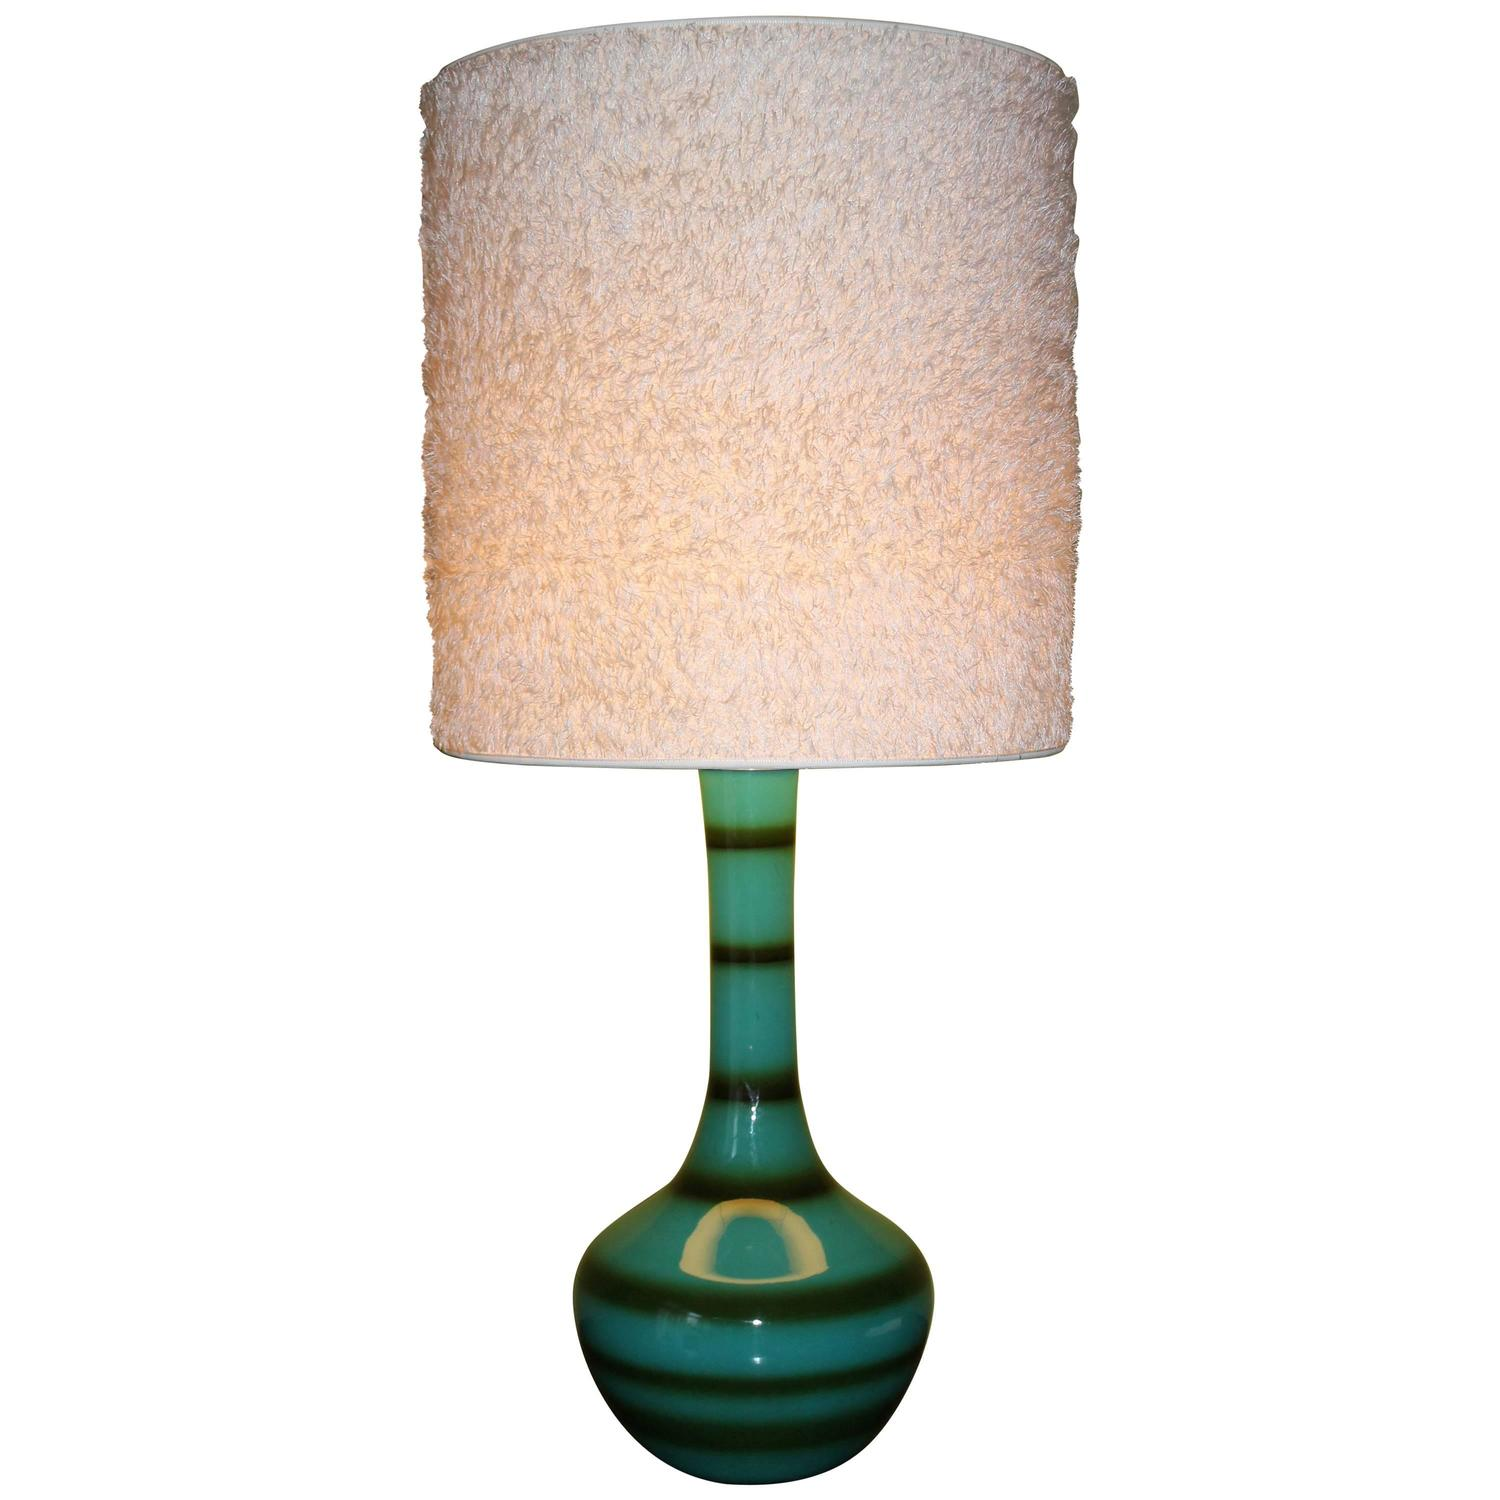 Century Table Lamp Z Gallerie Best Inspiration For Table